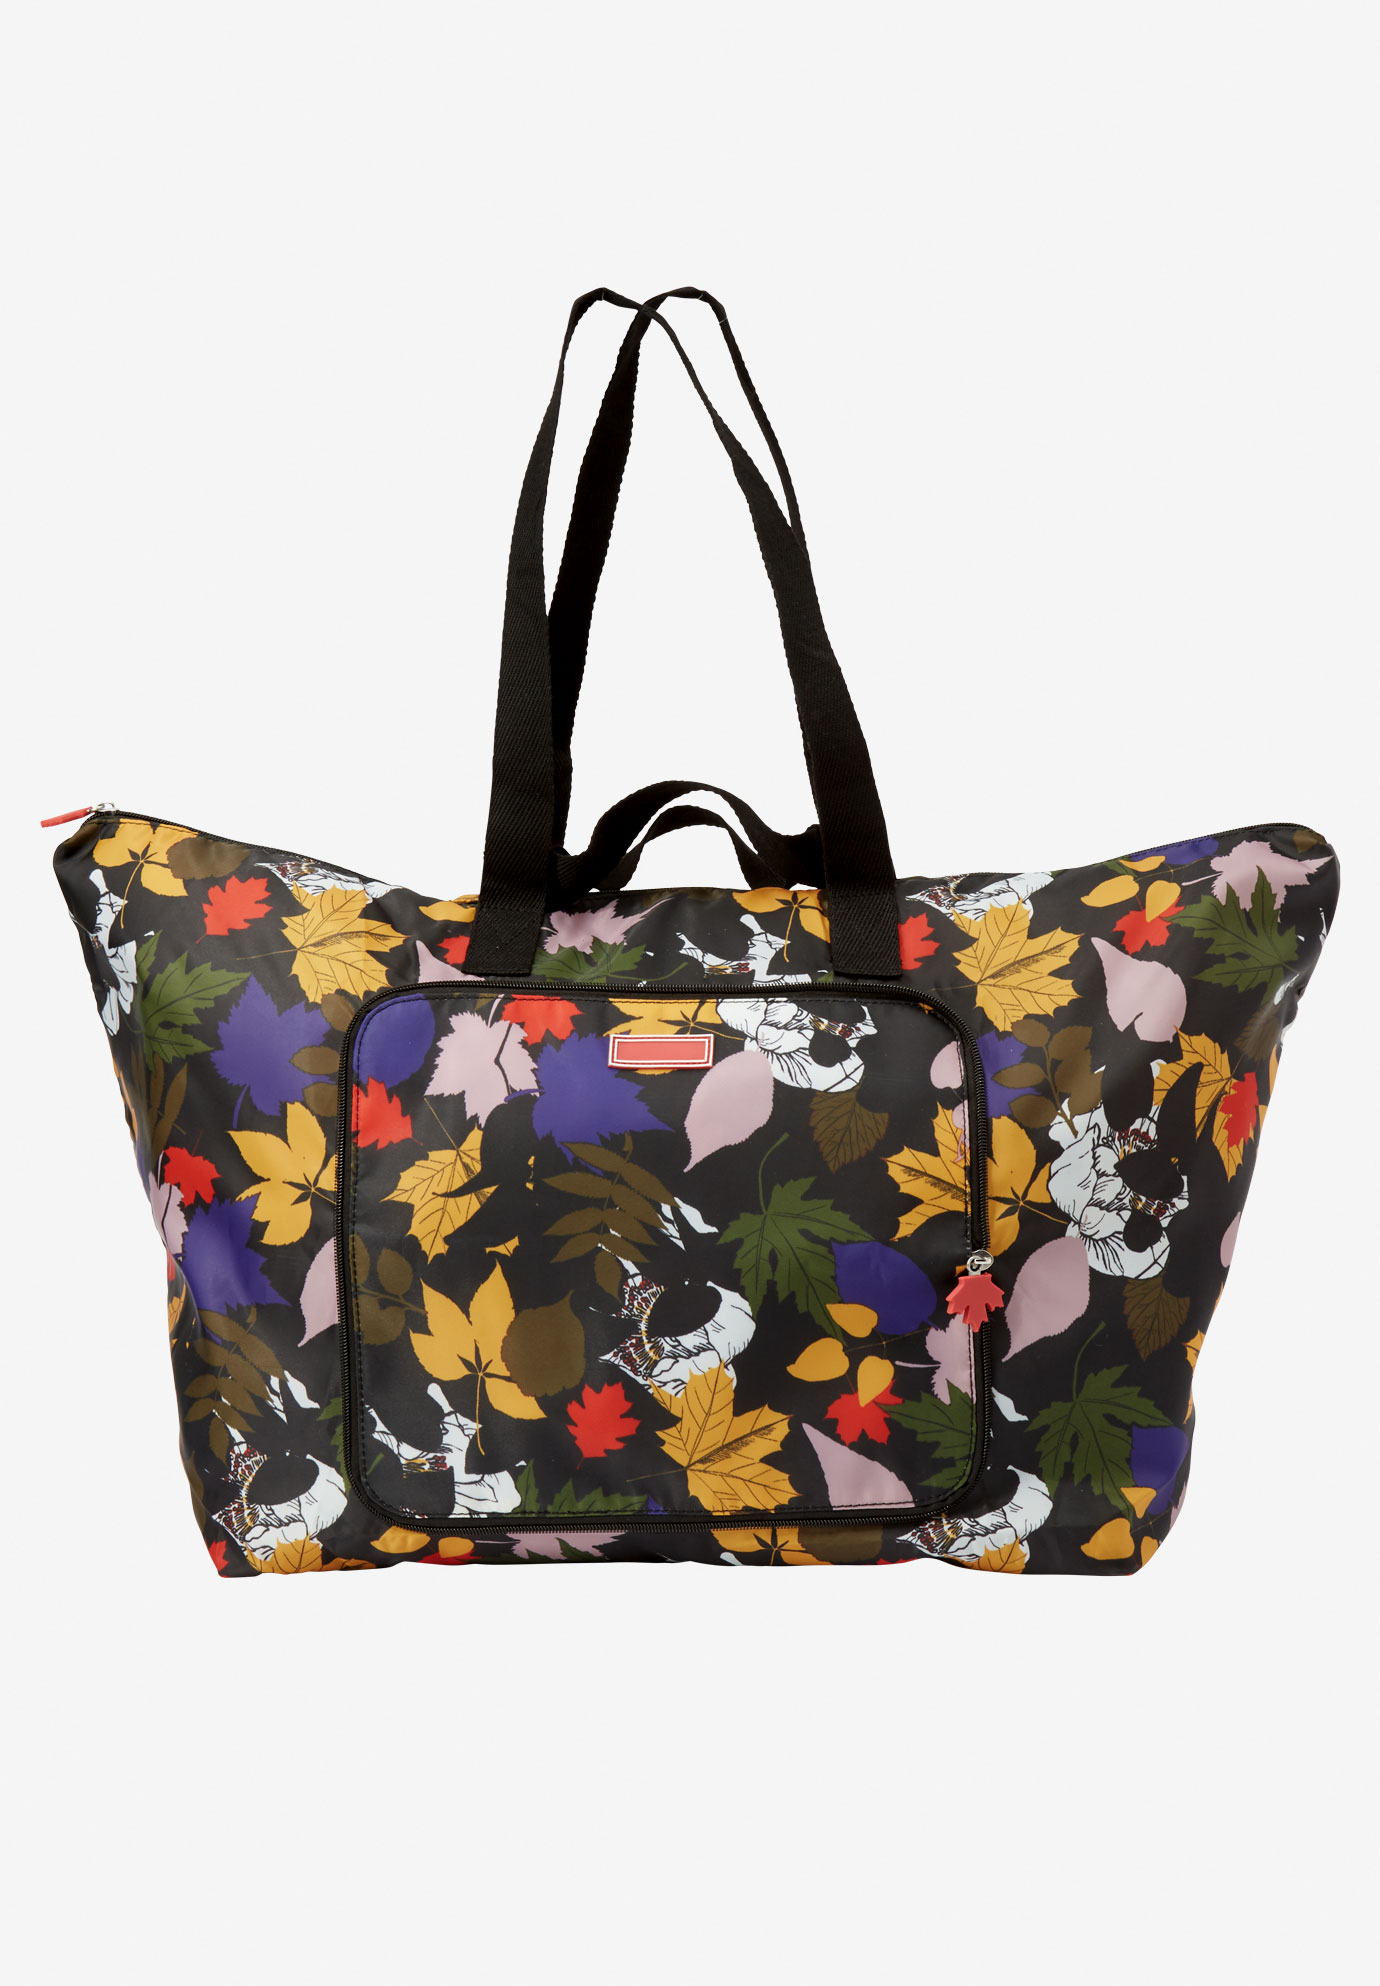 4-piece packble tote set, BLACK SCATTERED LEAVES